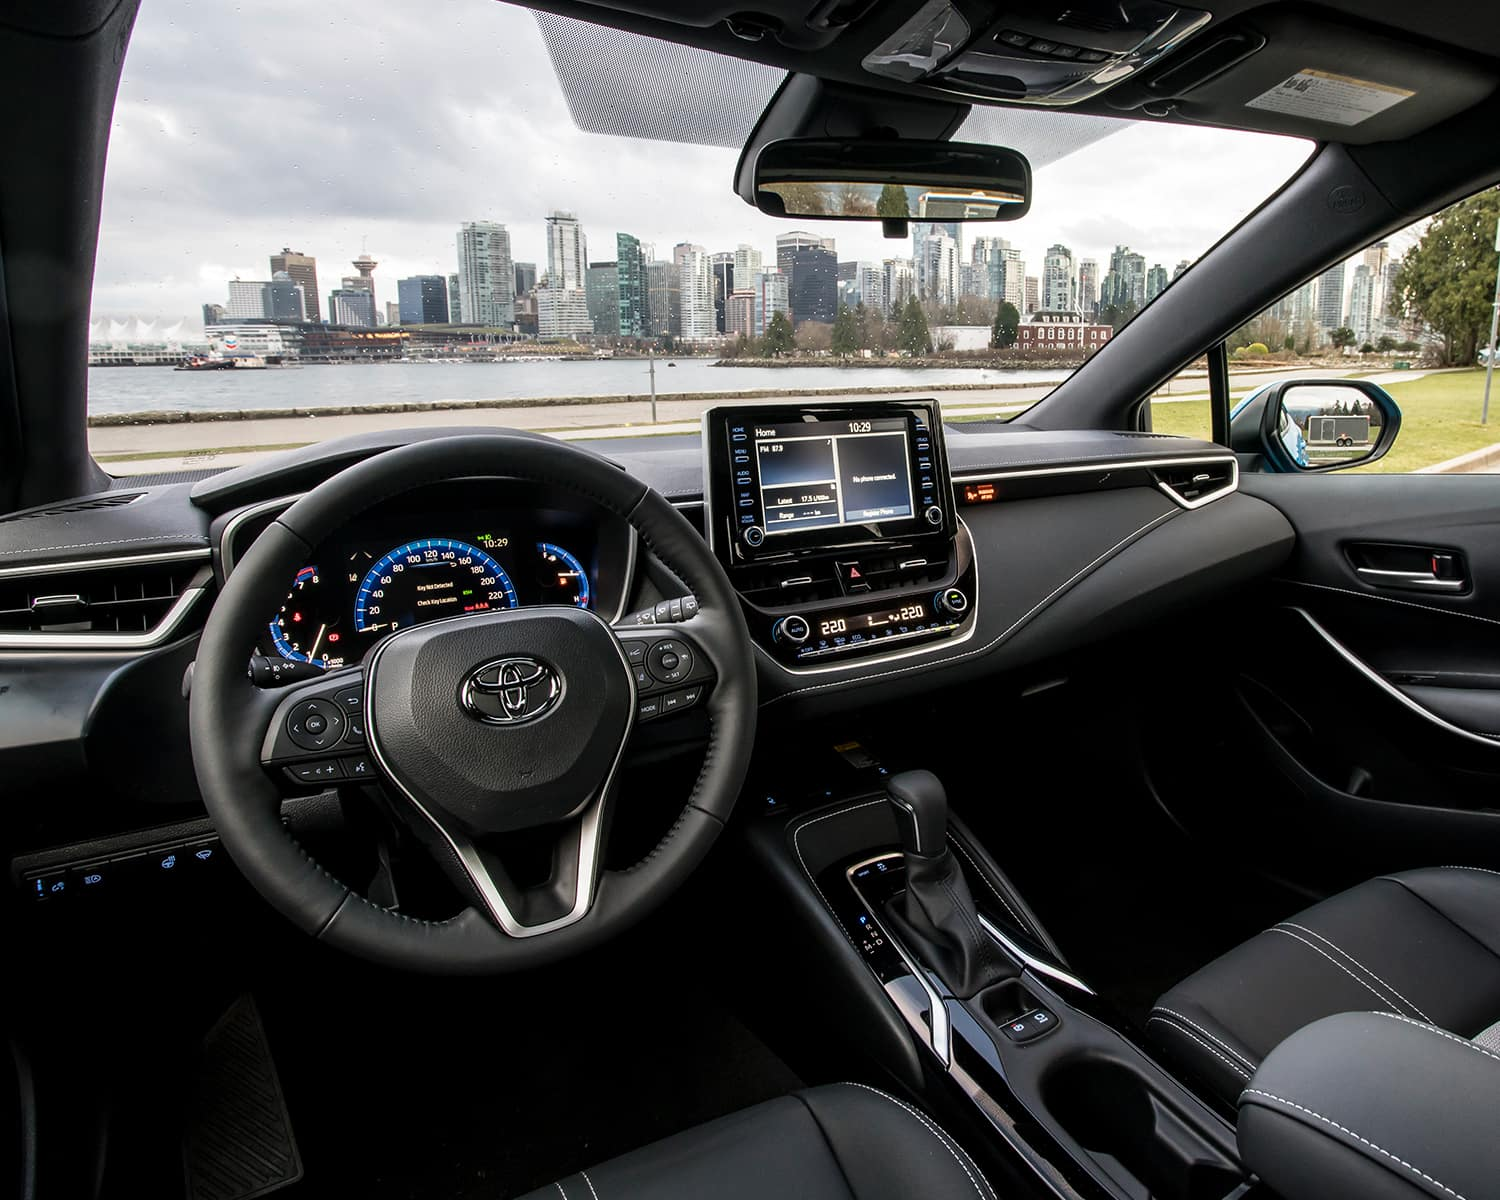 Toyota Corolla Interior >> 2019 Toyota Corolla Hatchback Overview Sherwood Park, AB